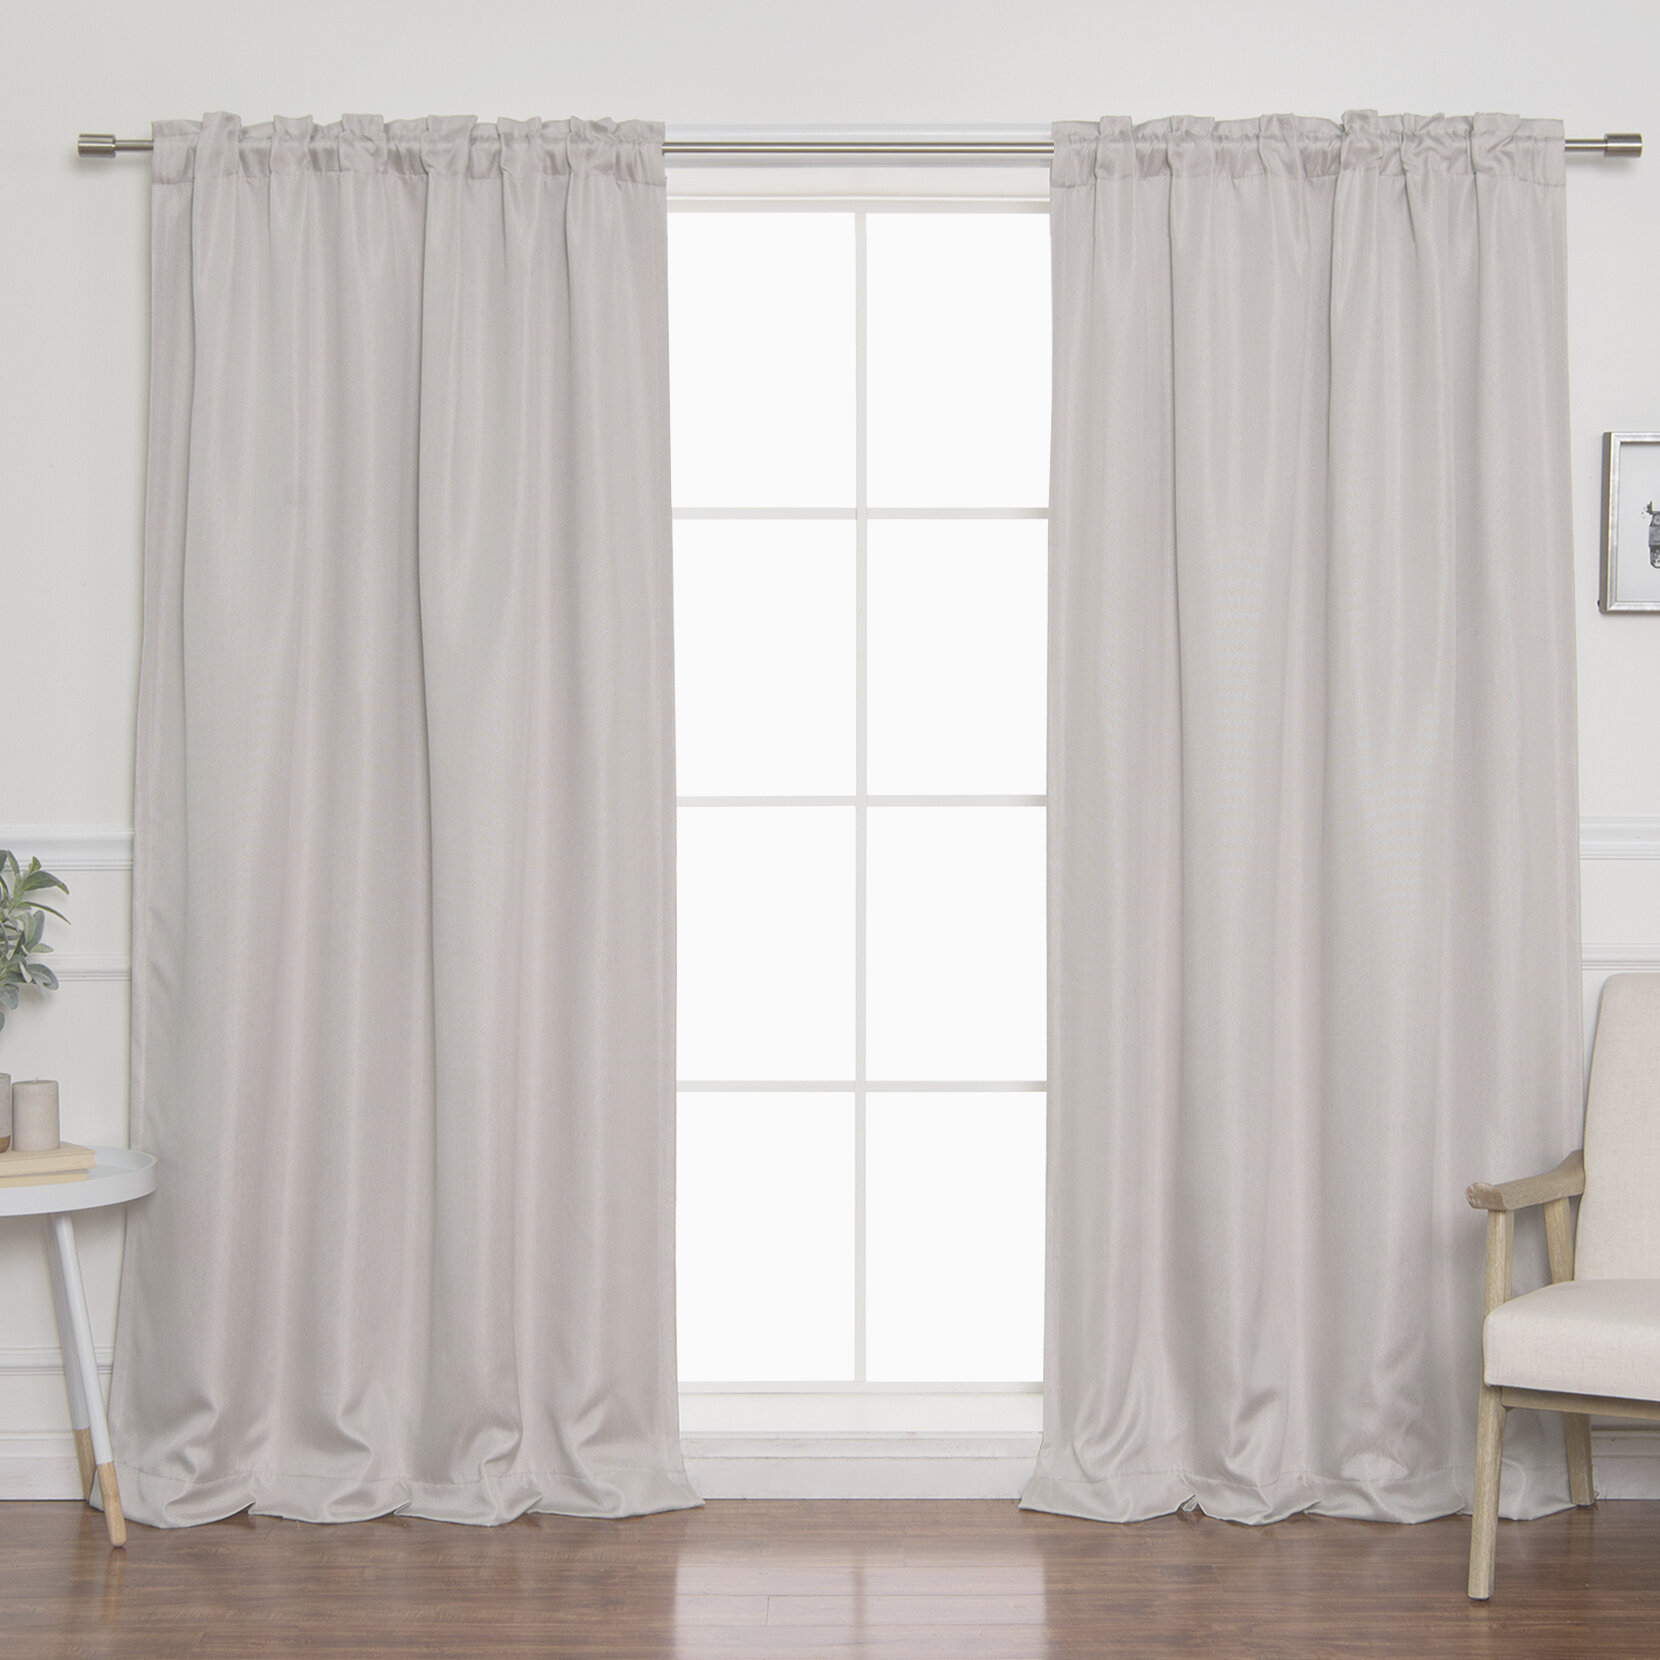 Vicenta Basketweave Faux Linen Solid Blackout Back Tab Top Curtain Panels Pertaining To Faux Linen Blackout Curtains (View 1 of 20)